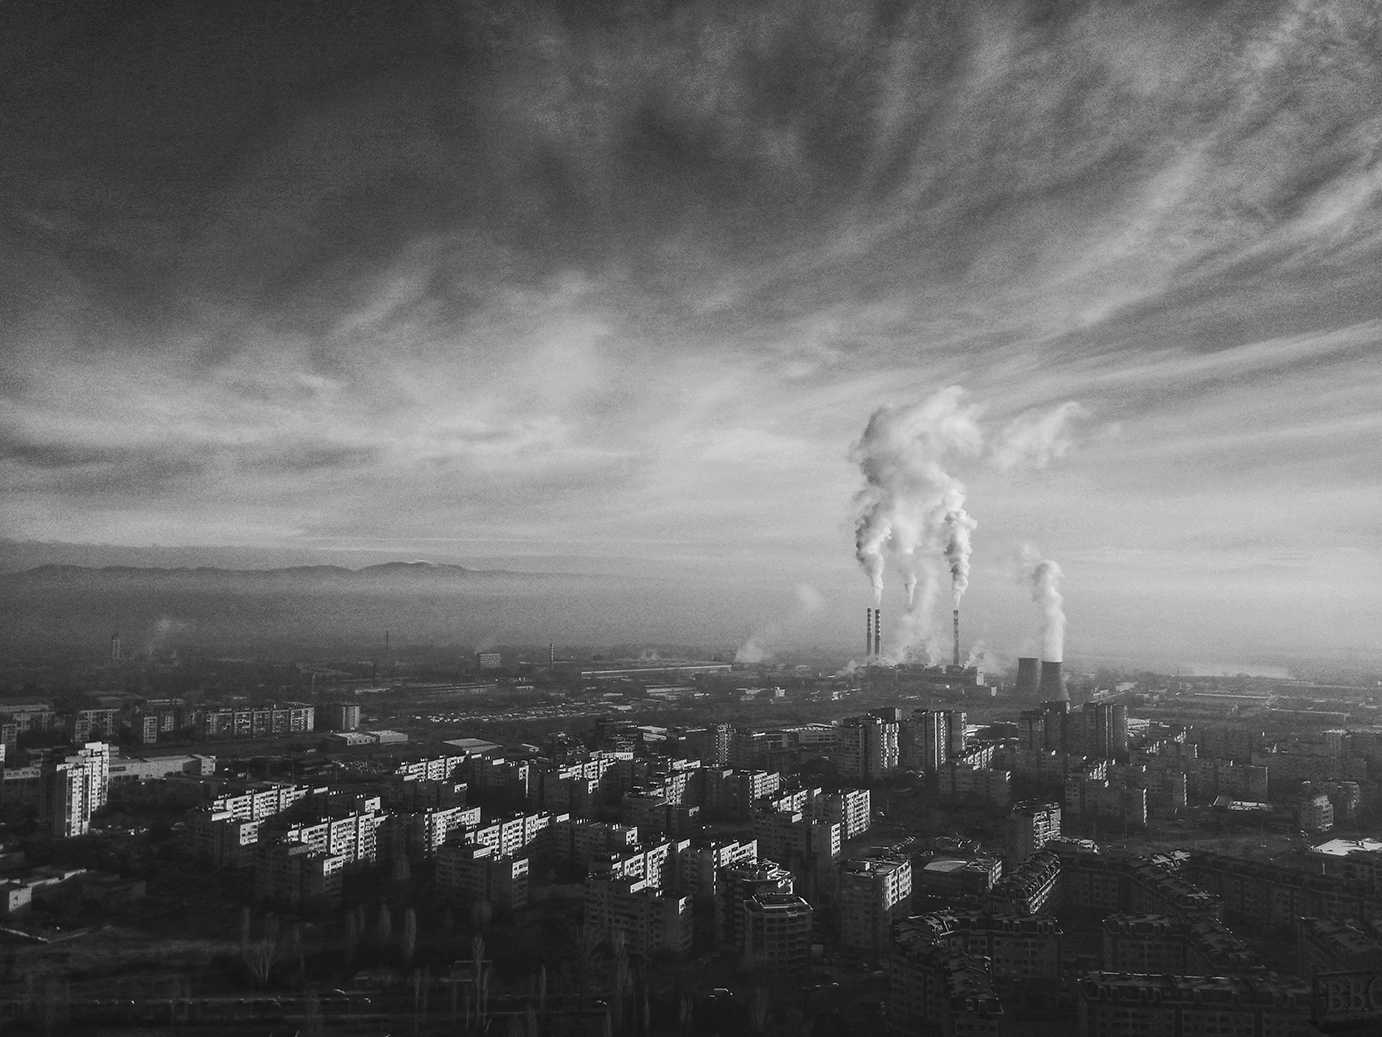 City-pollution-edit.jpg